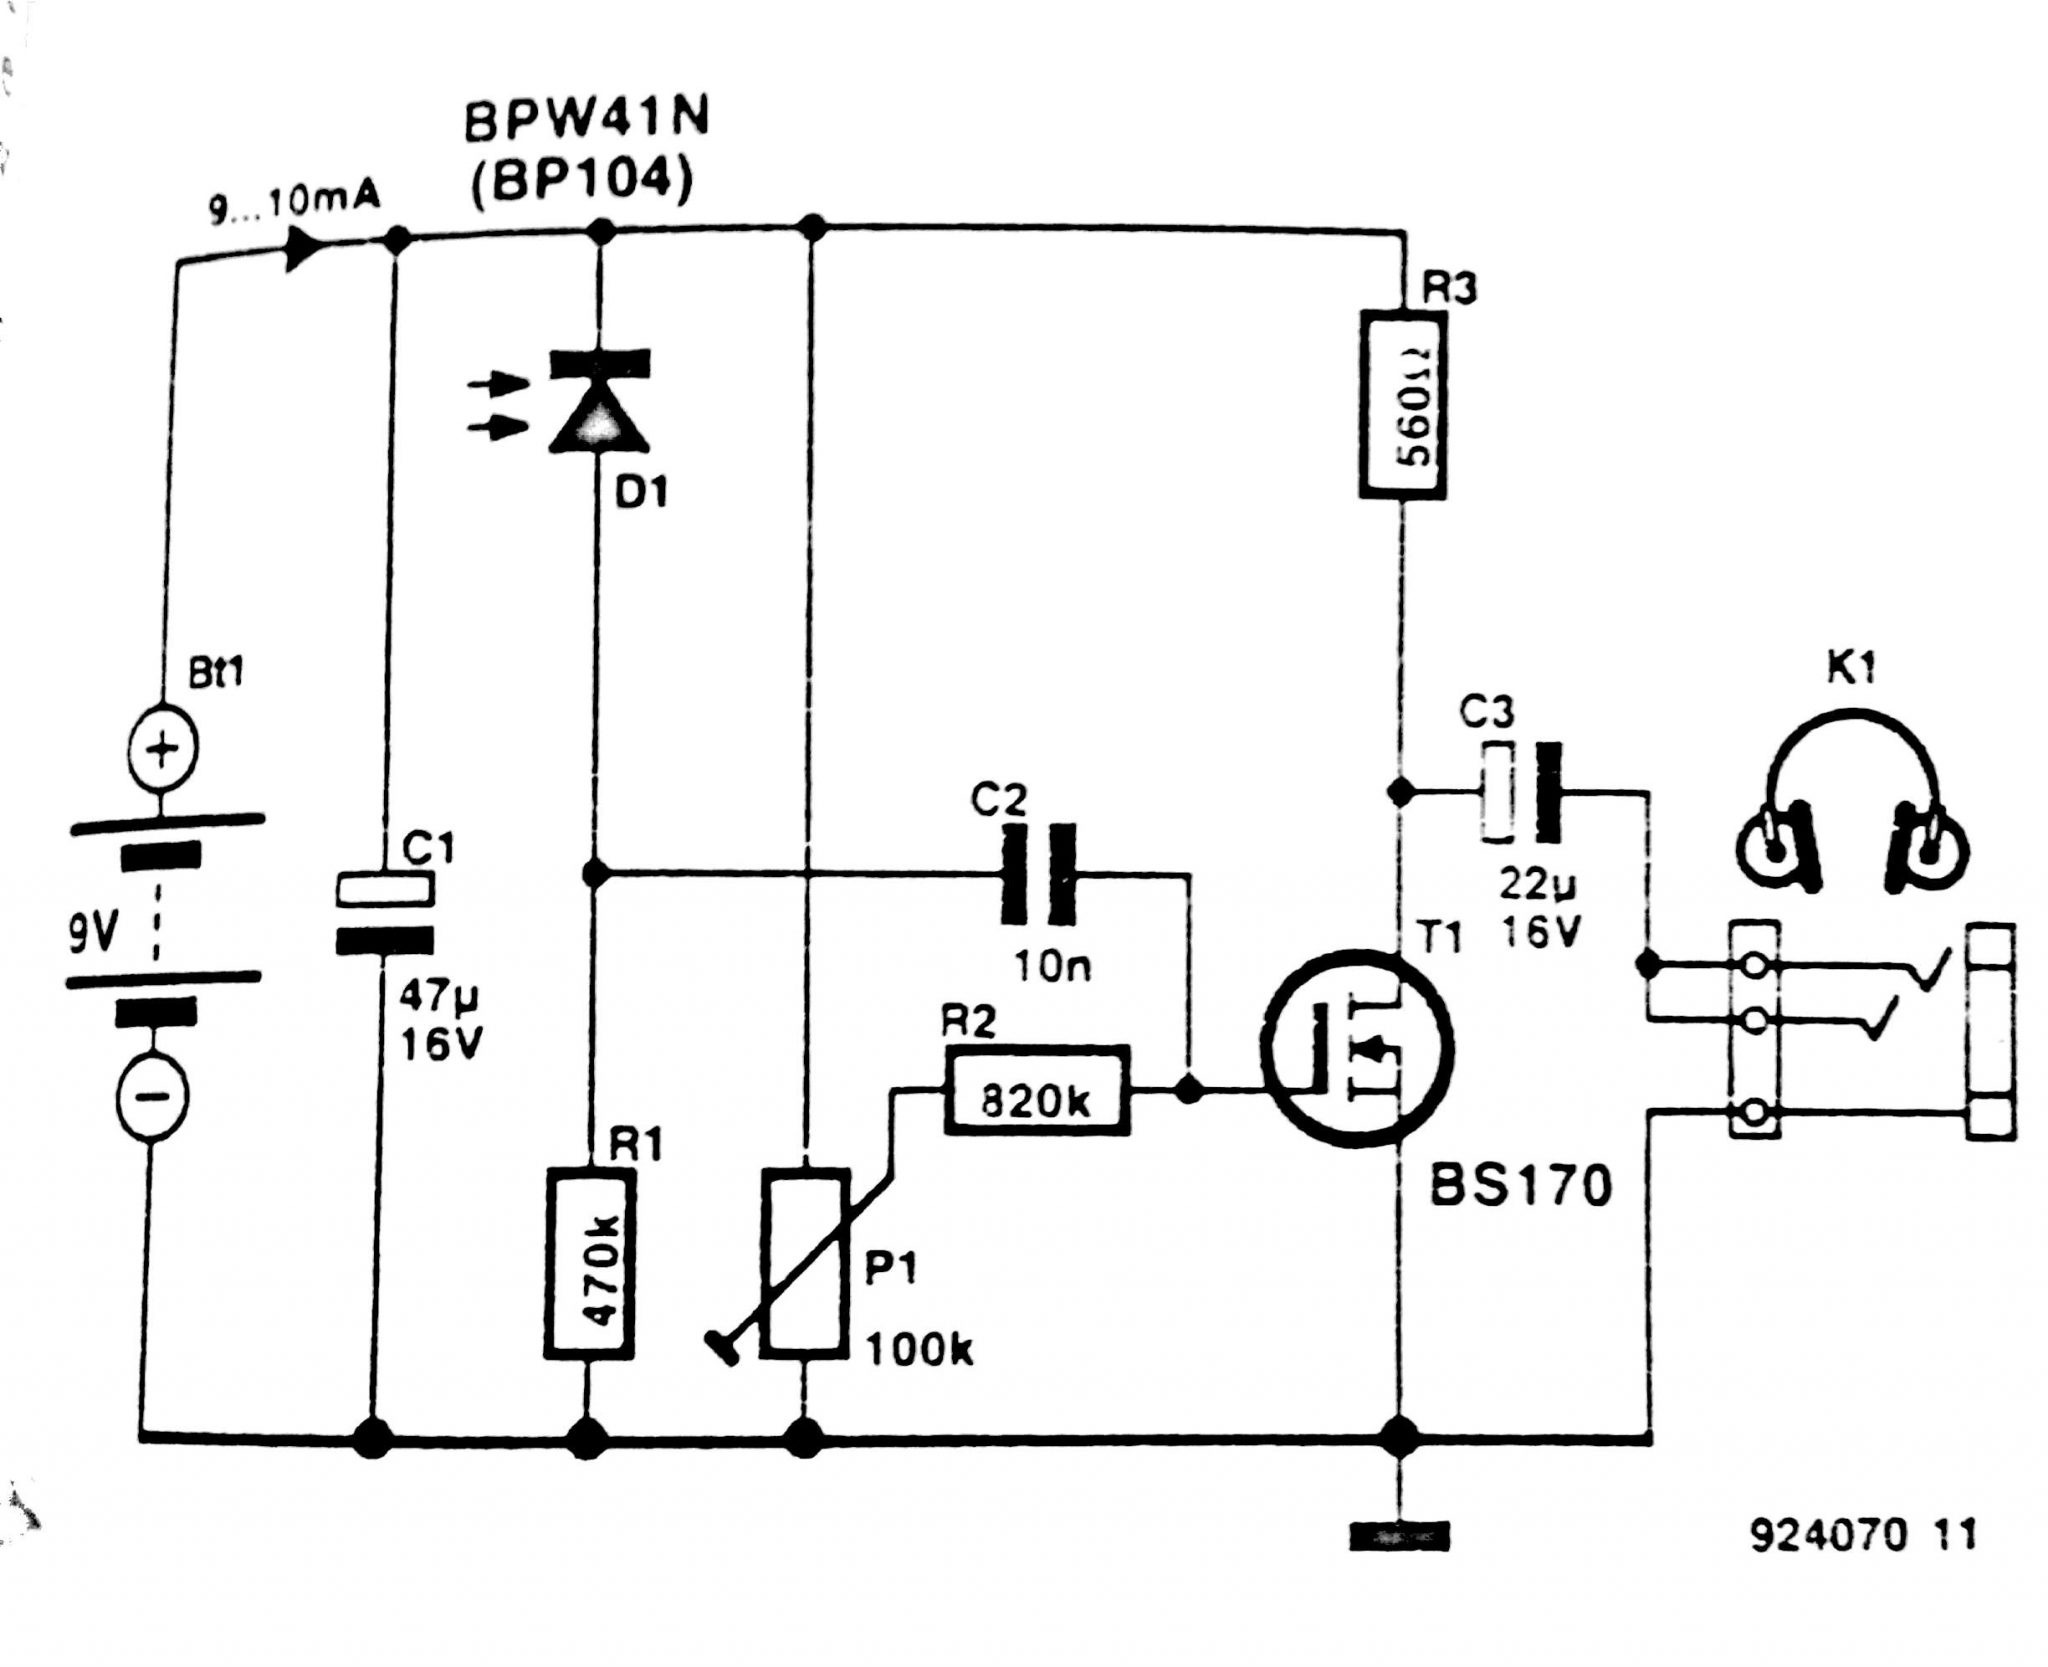 Infra Red Headphone Receiver Circuit Diagram